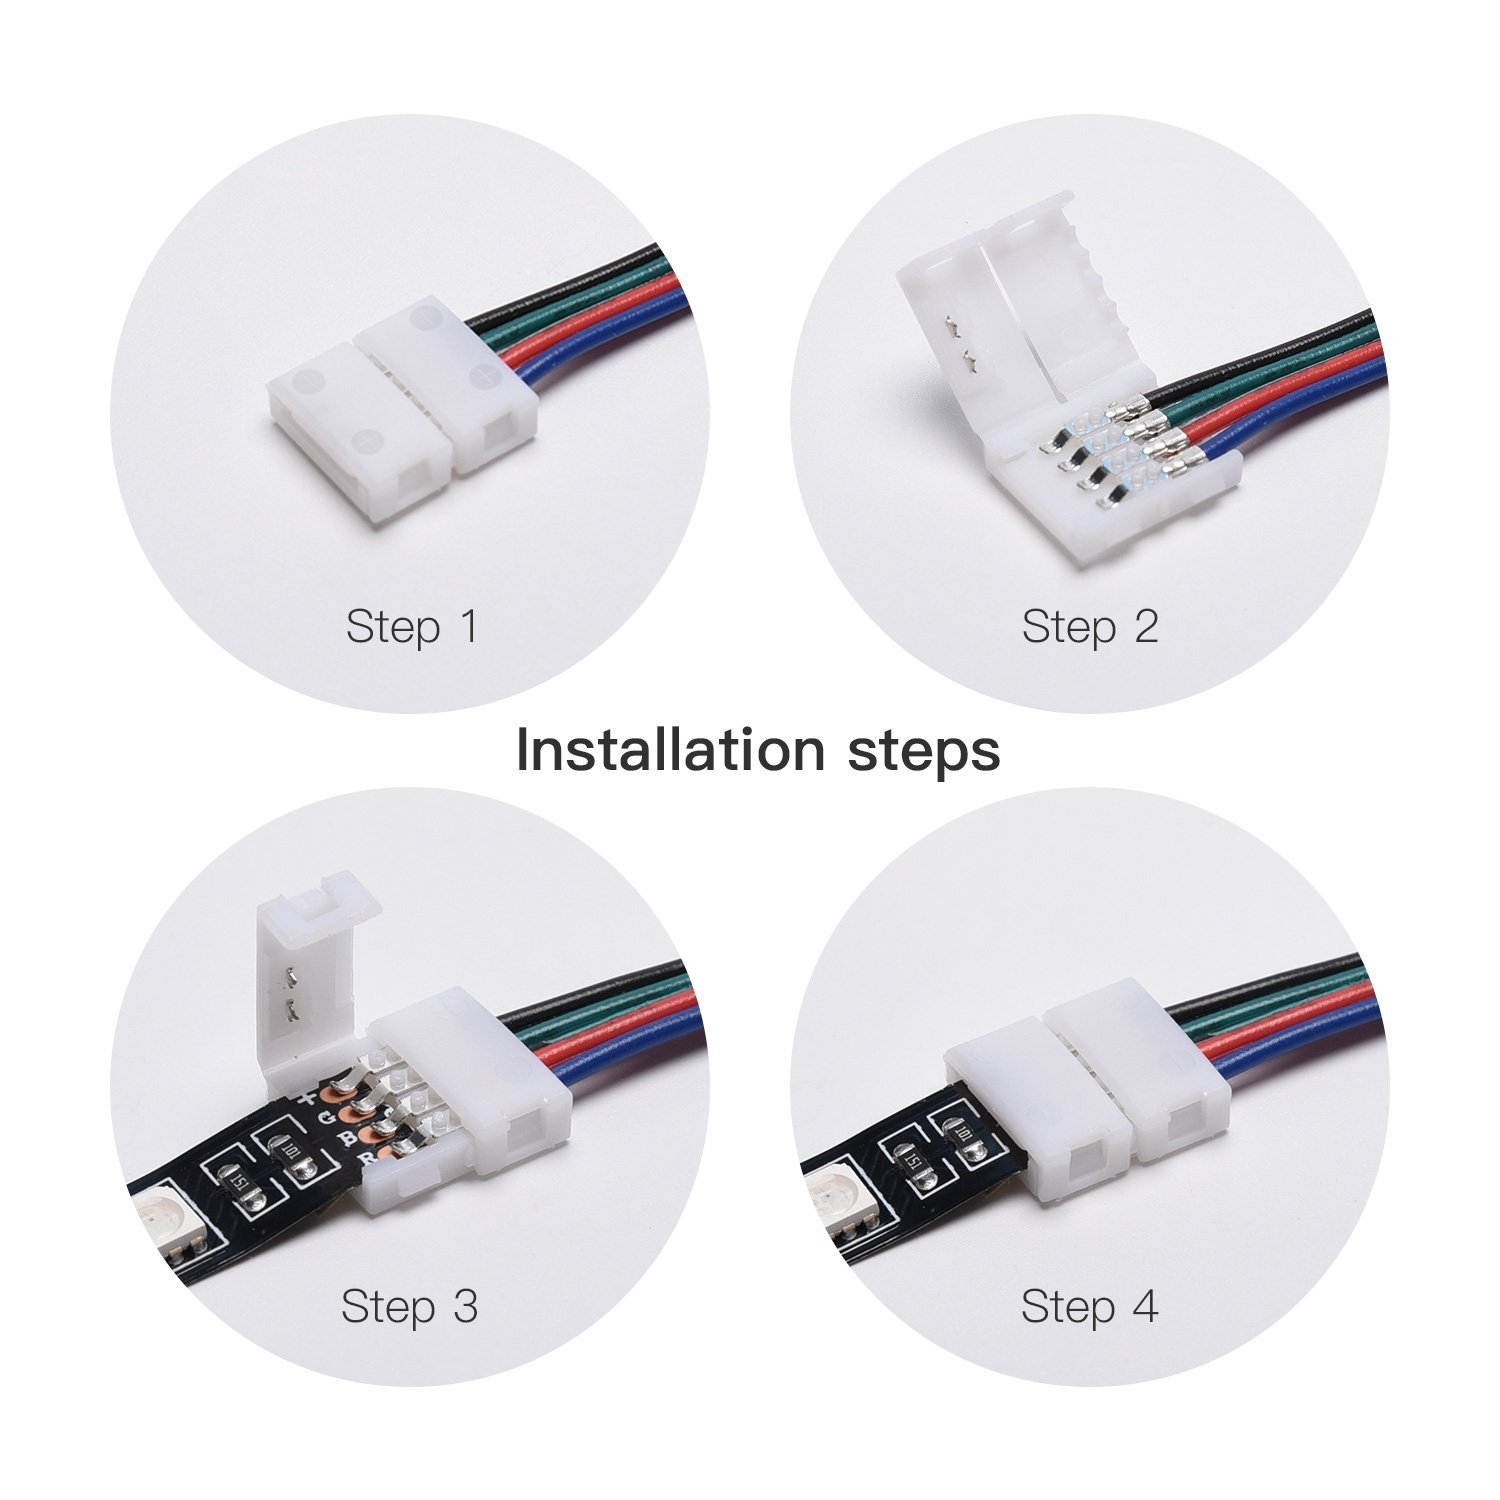 Jackyled Rgb 5050 3528 Led Light Strip Connector 4 Pins 10 Mm Wide Pcs Pin Male Female With Wire For To Jumper Pack Solderless